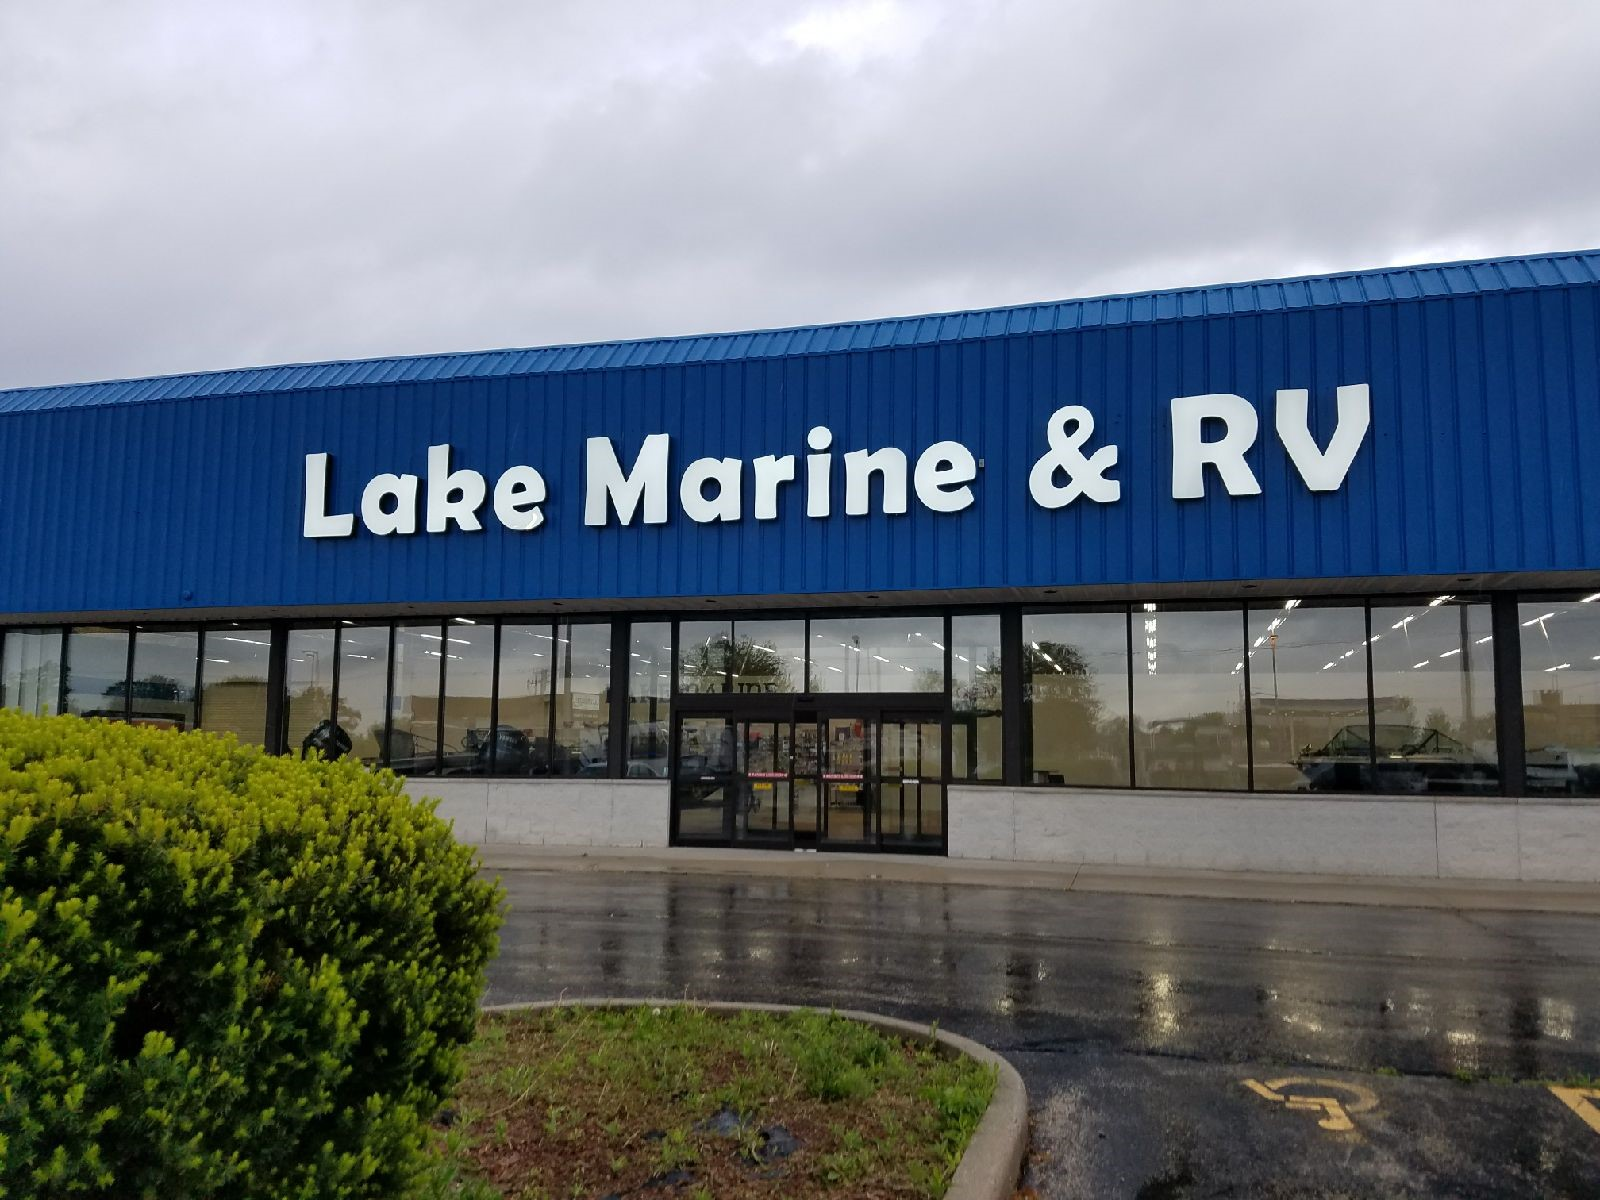 Lake Marine & RV